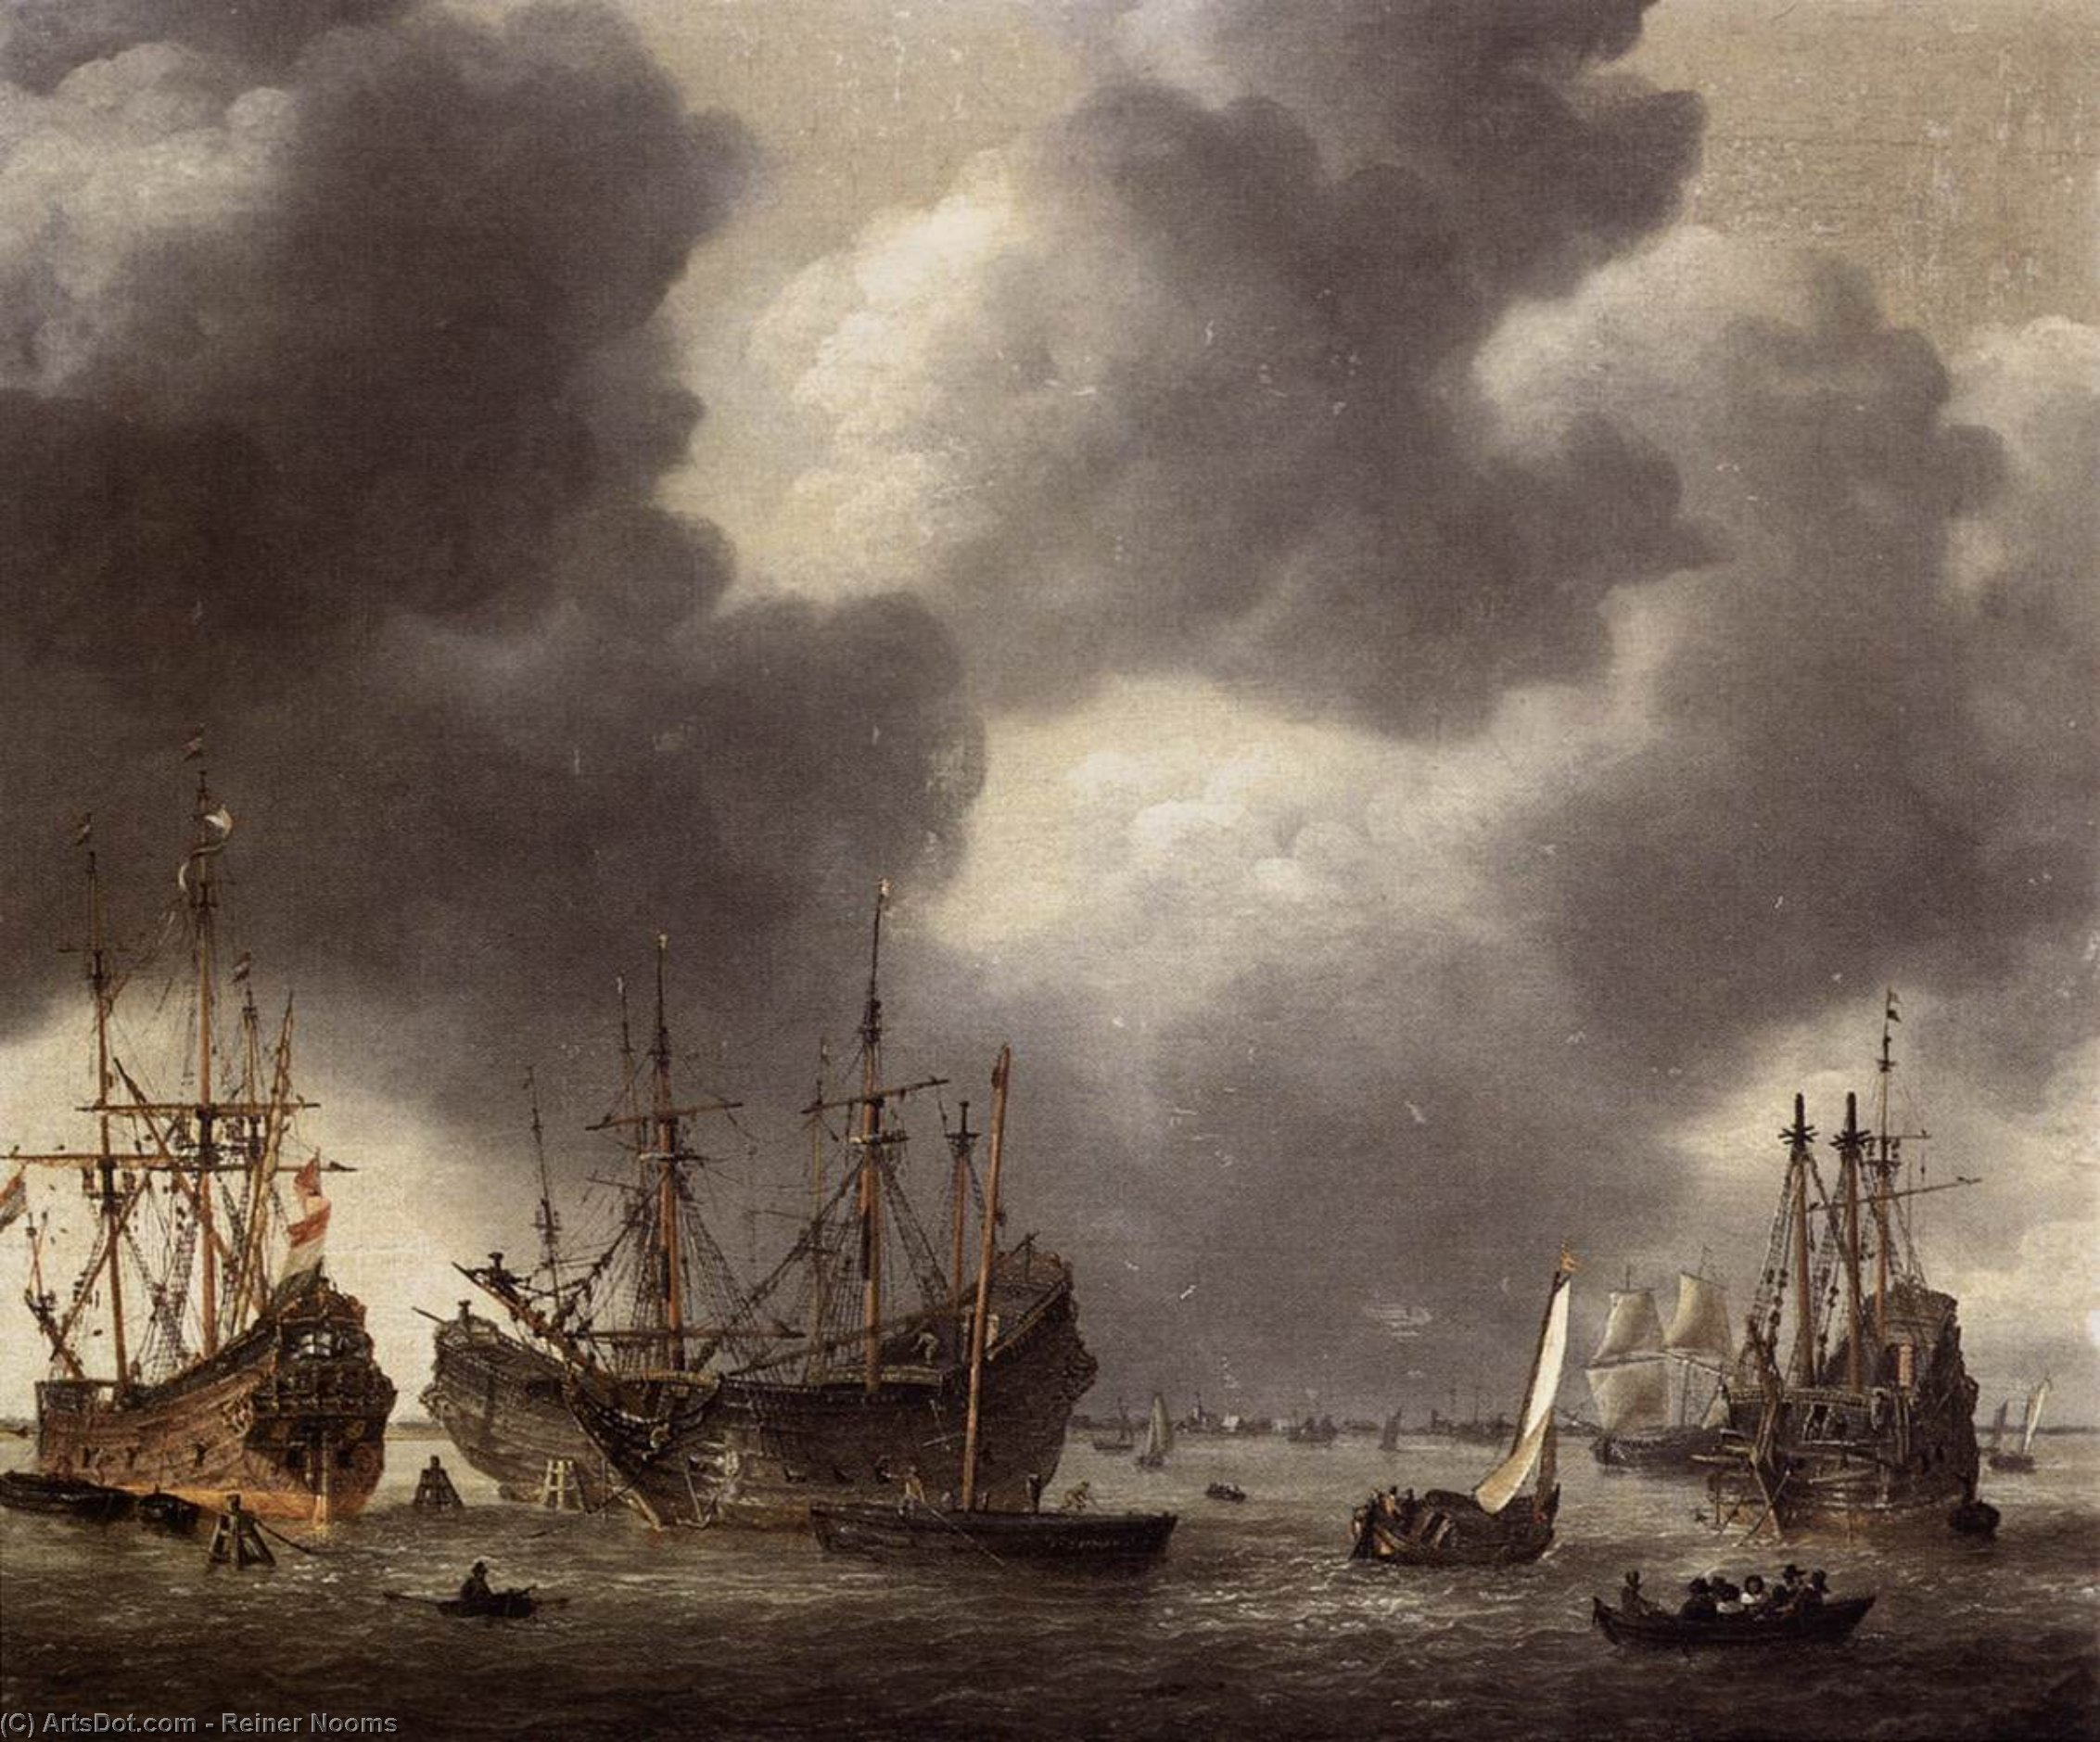 Merchant Vessel at Anchor, Oil On Canvas by Reiner Nooms (1623-1667, Netherlands)